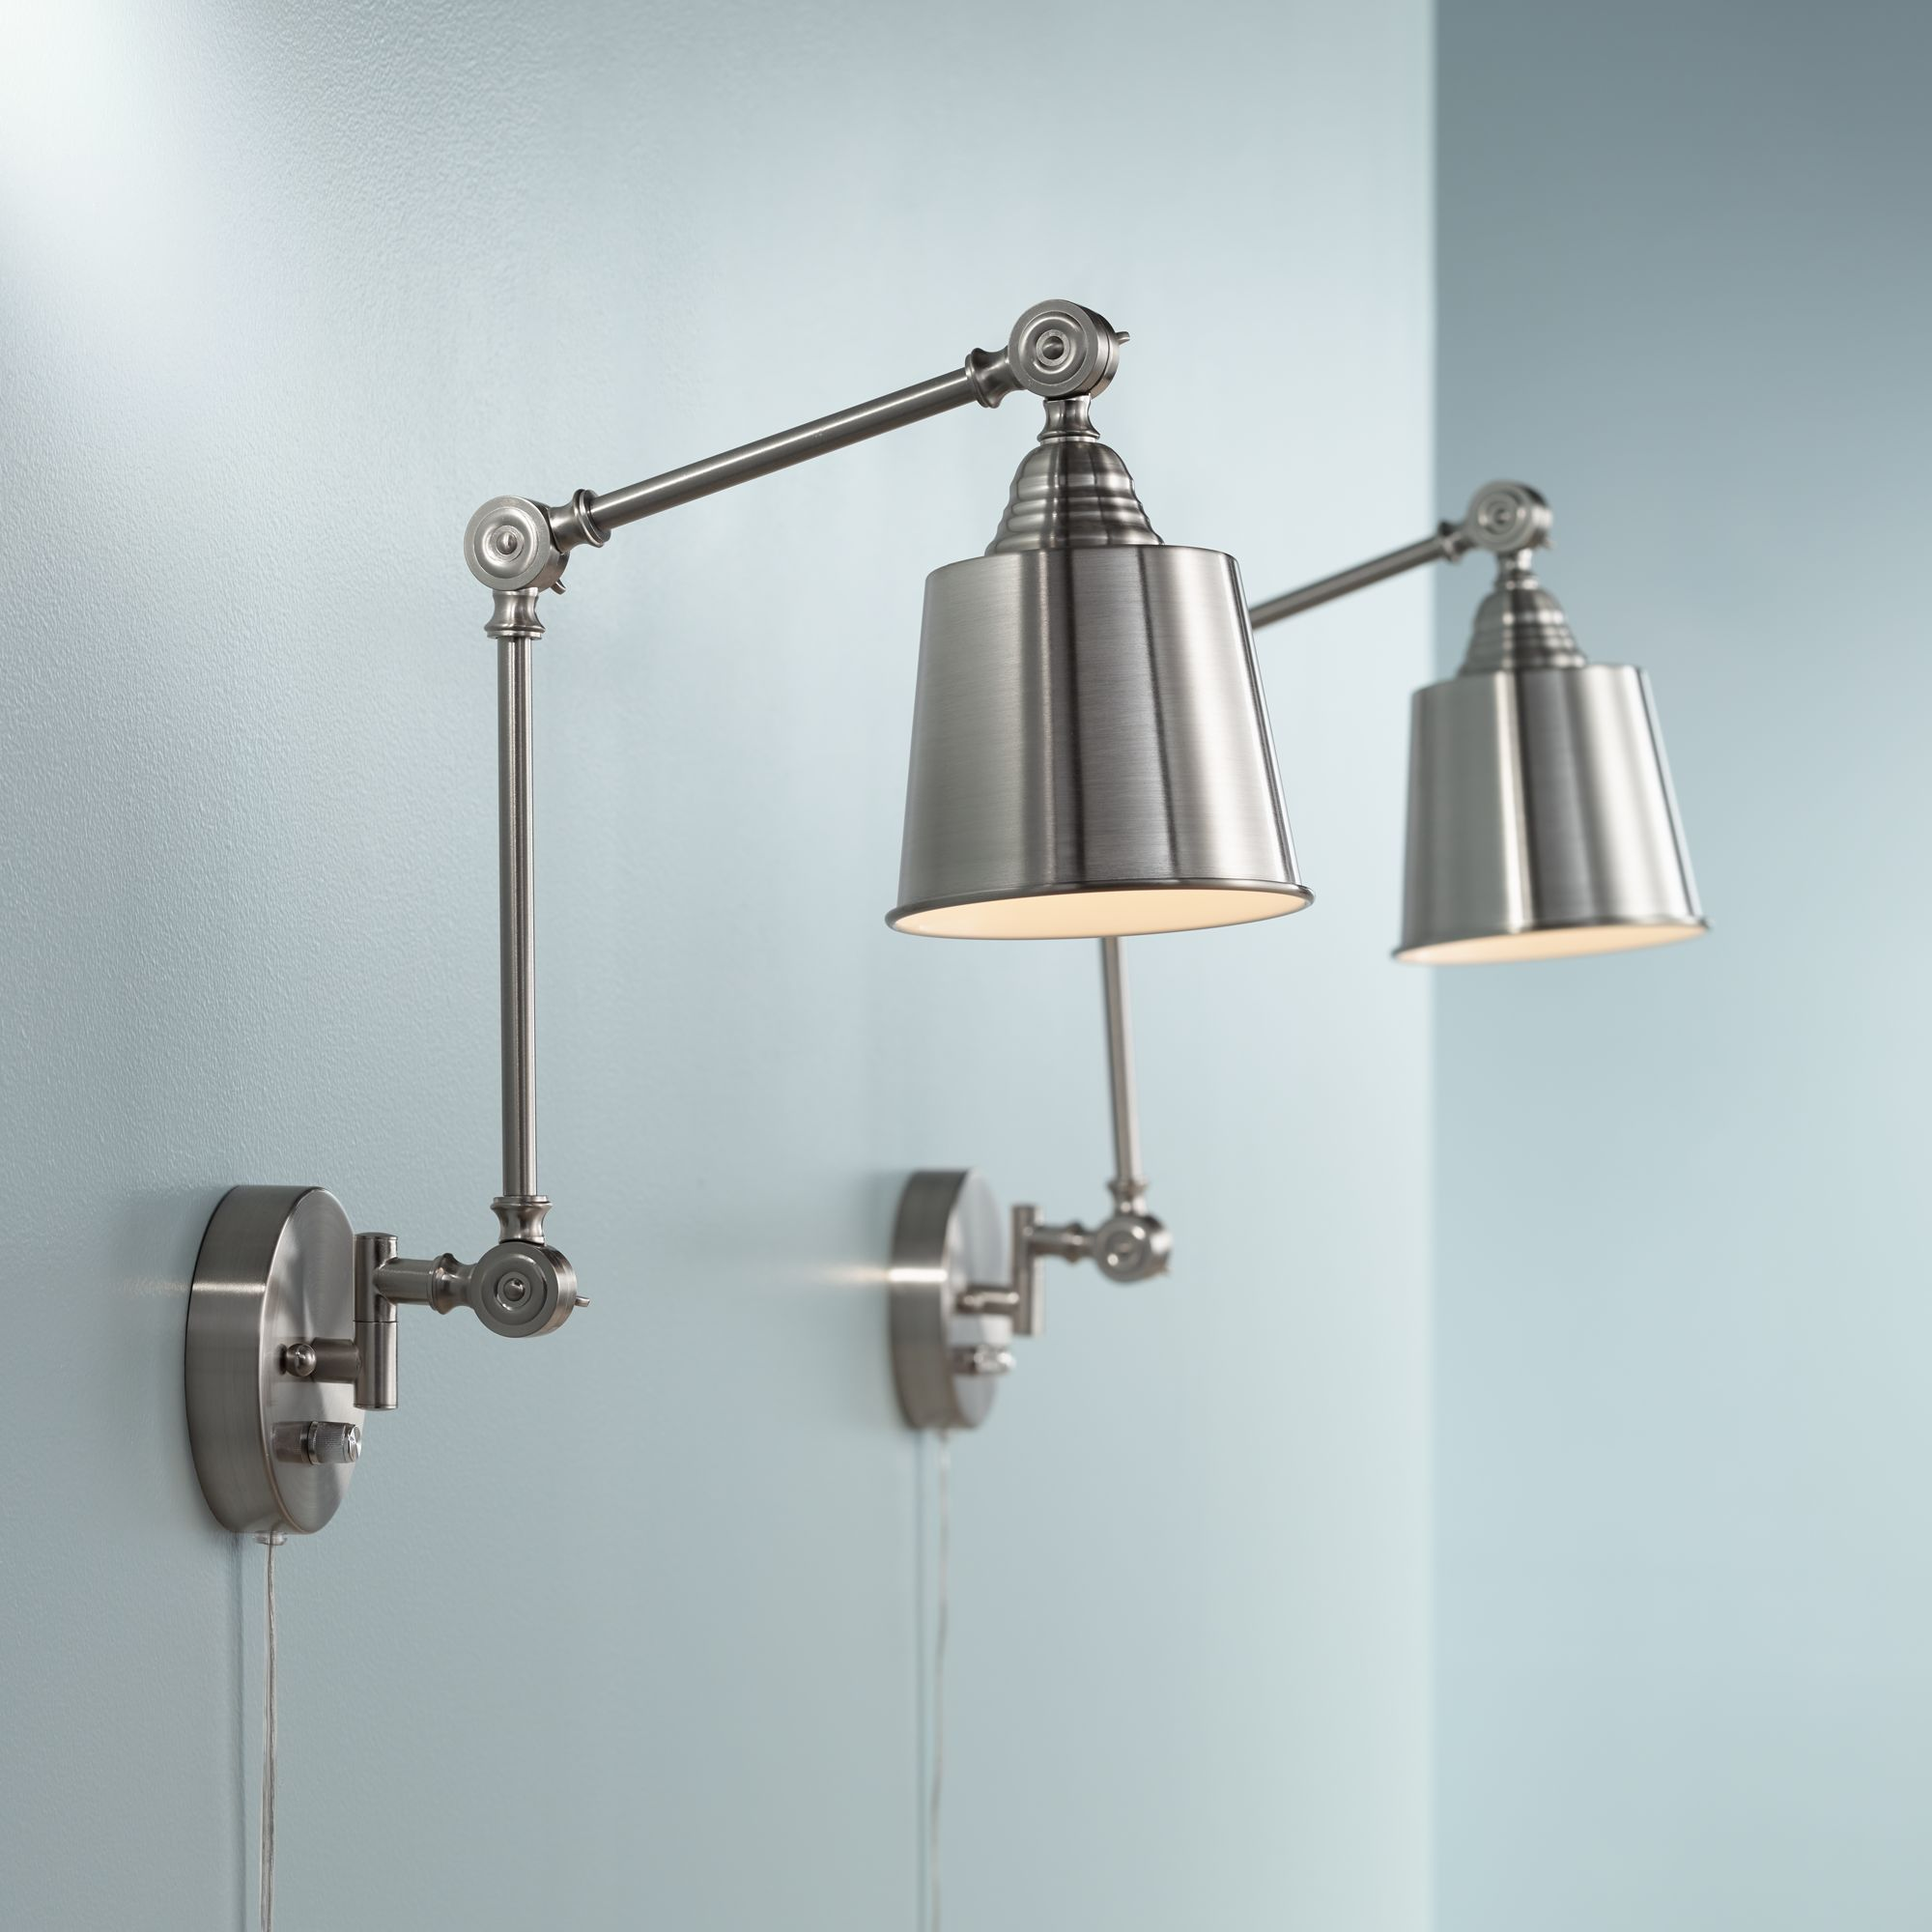 360 Lighting Set Of 2 Mendes Brushed Steel Plug-In Wall Lamps by 360 Lighting